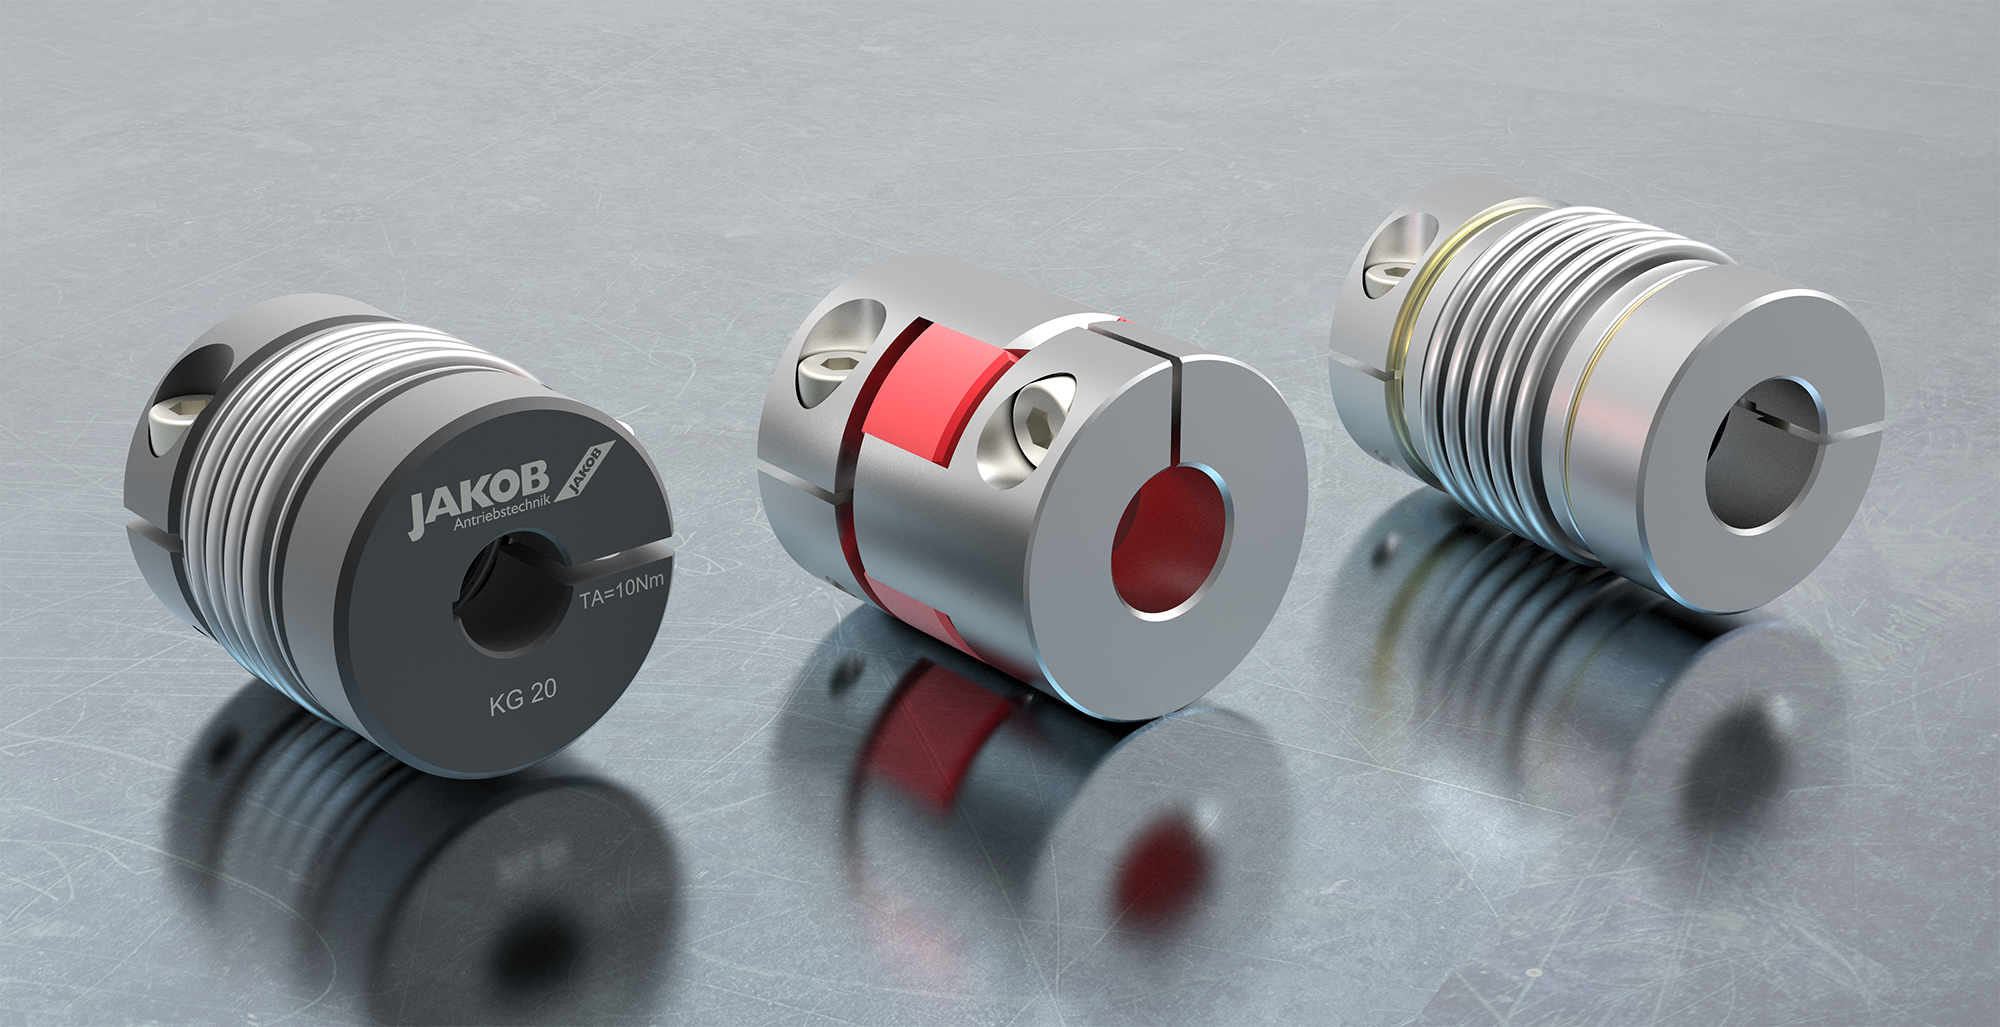 Jakob miniature couplings create precision